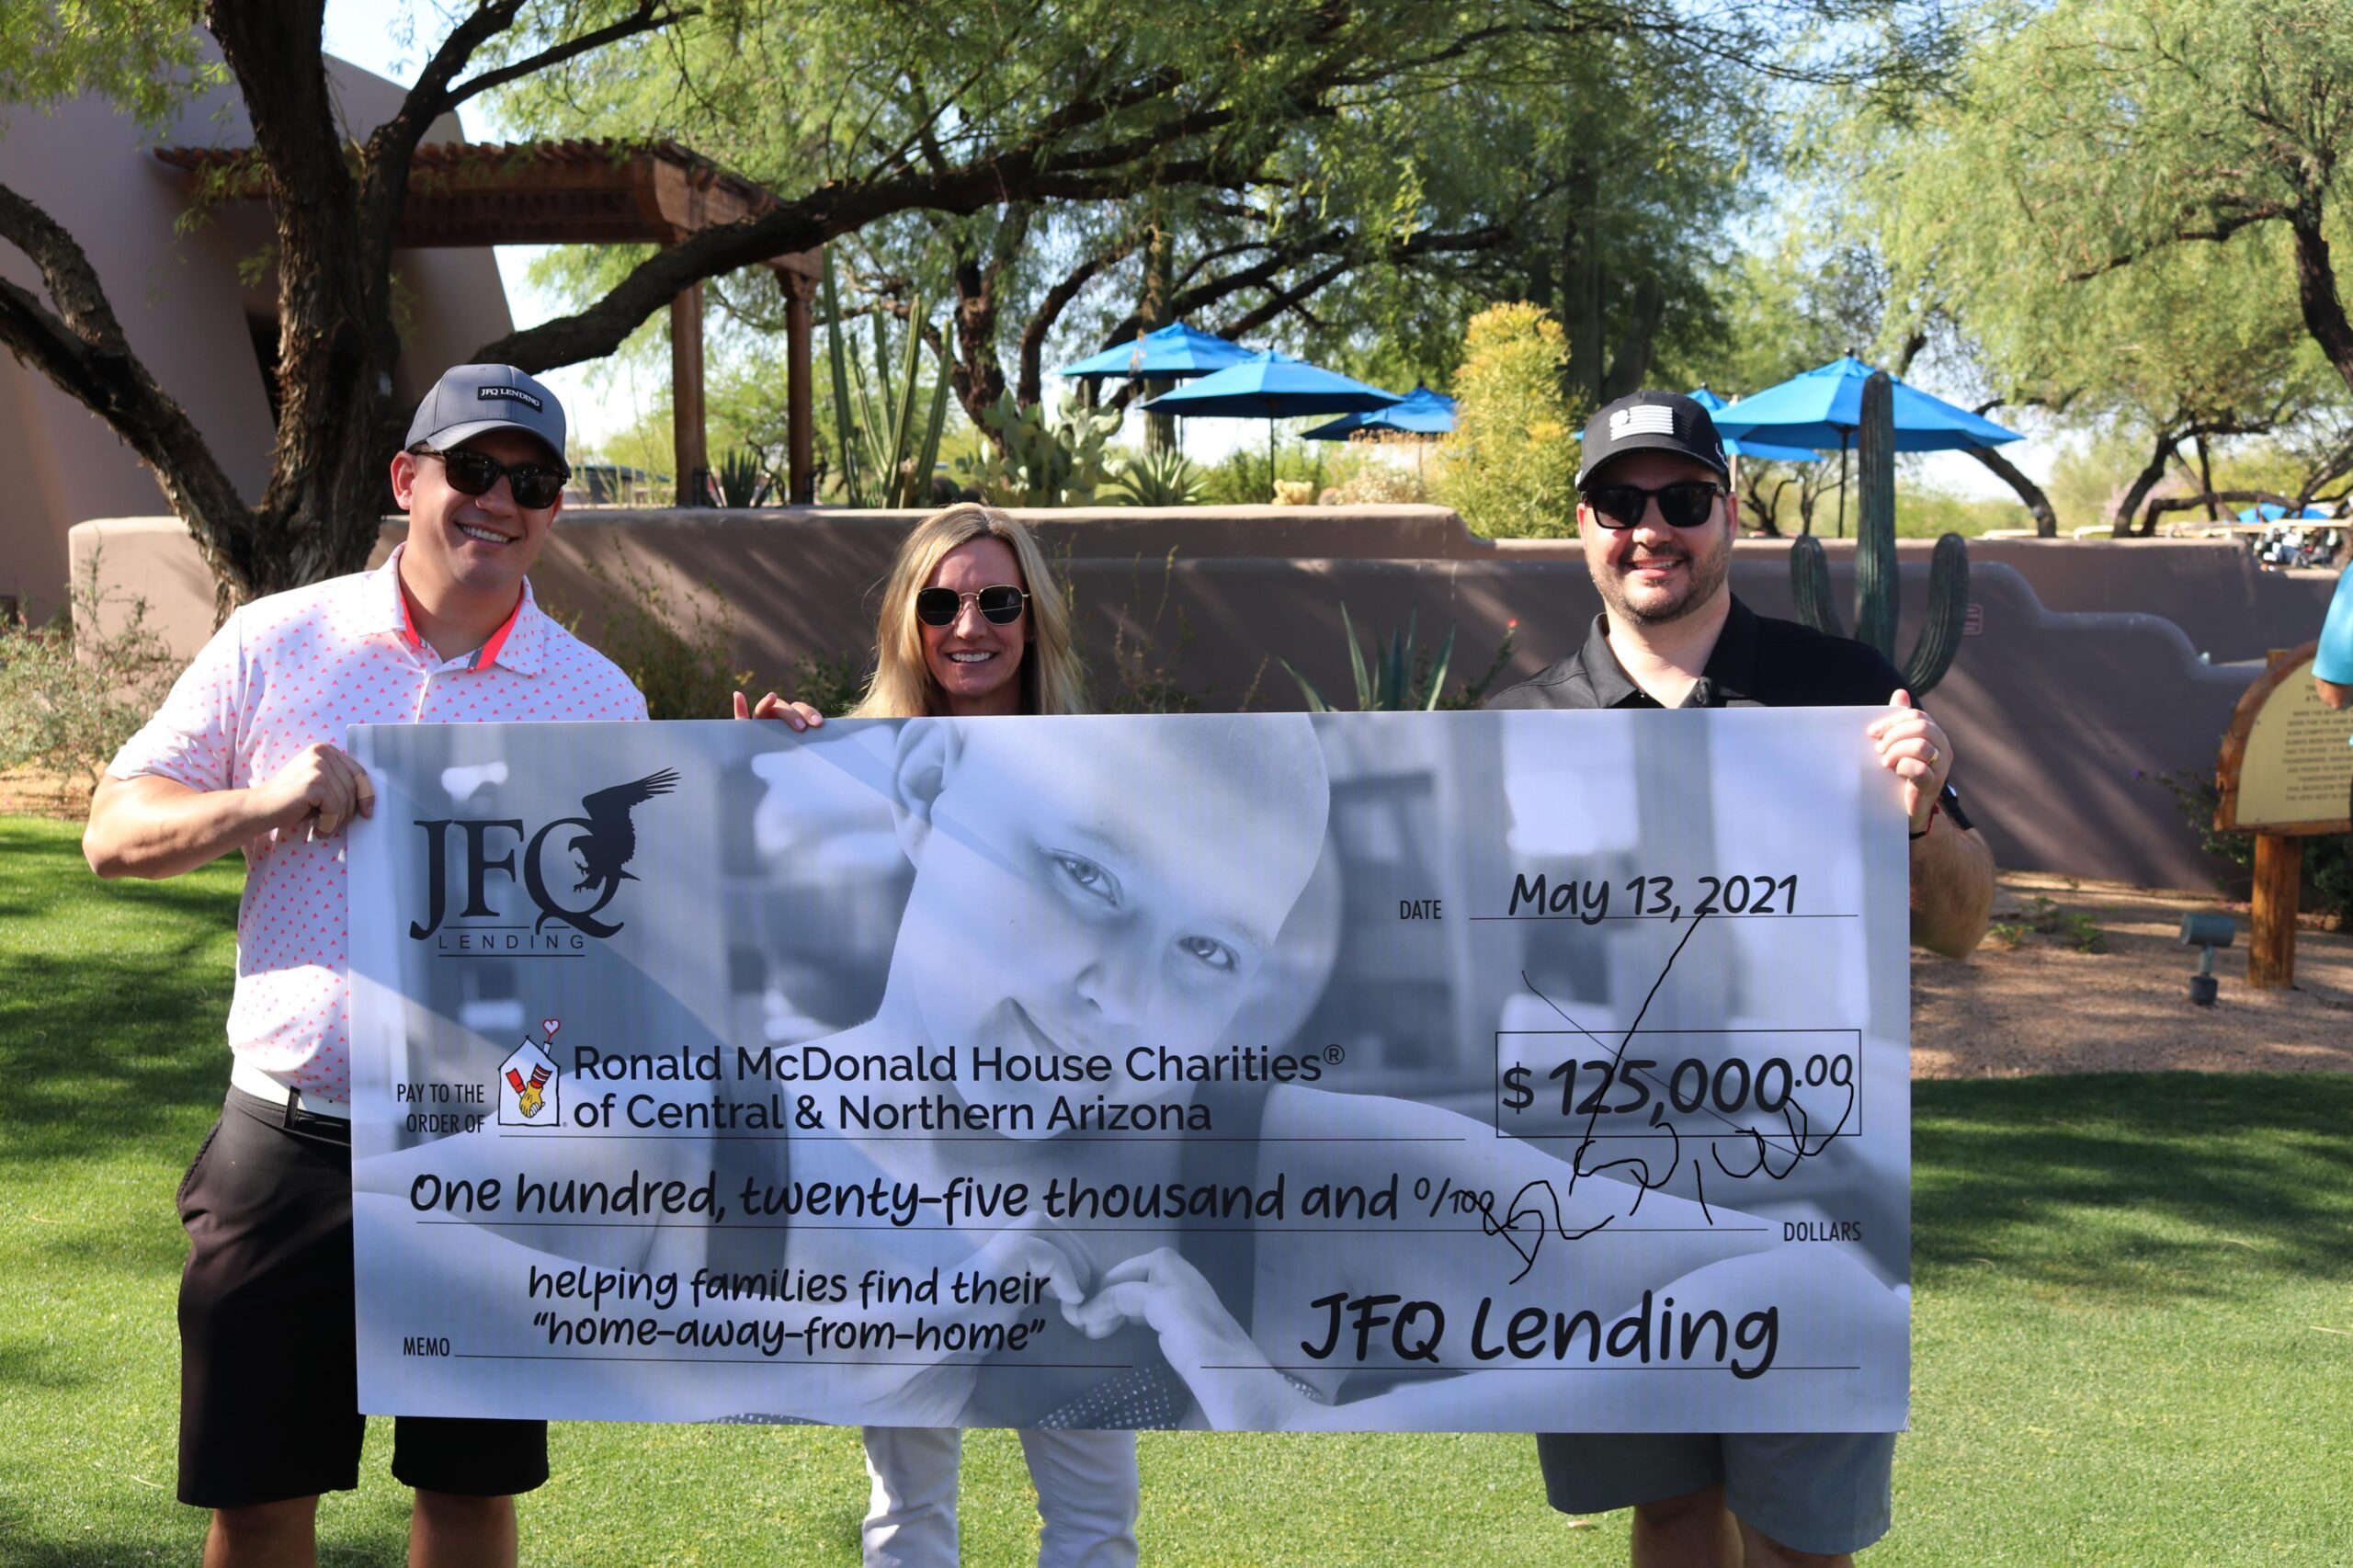 JFQ Lending Teams Up With Ronald McDonald House Families at the 2021 Greater Phoenix Pro-Am Golf Tournament